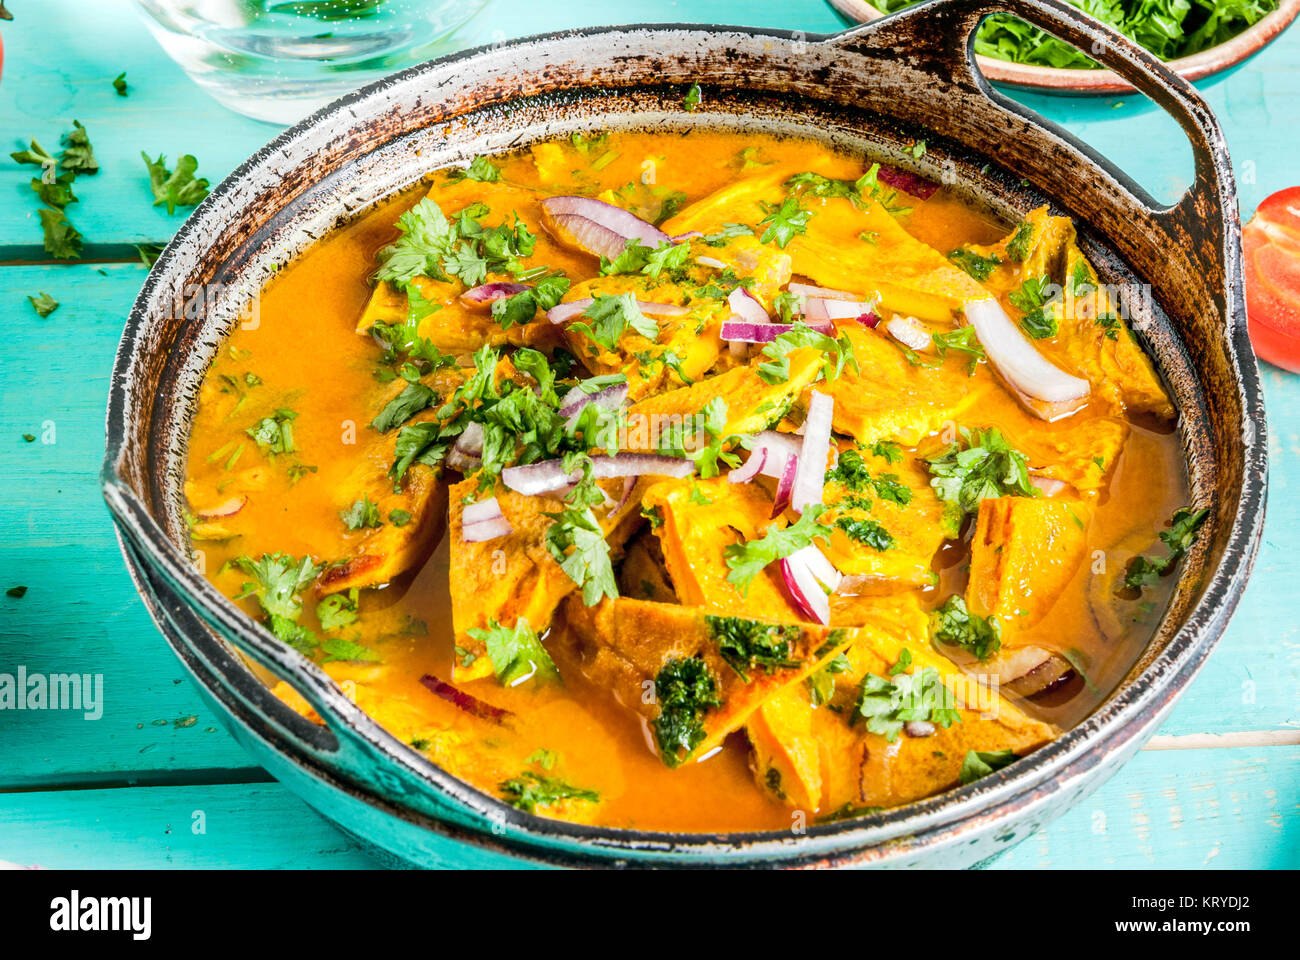 Indian food recipes indian omelet masala egg curry with fresh indian food recipes indian omelet masala egg curry with fresh vegetables tomato hot chili pepper parsley light blue wooden background copy spa forumfinder Image collections